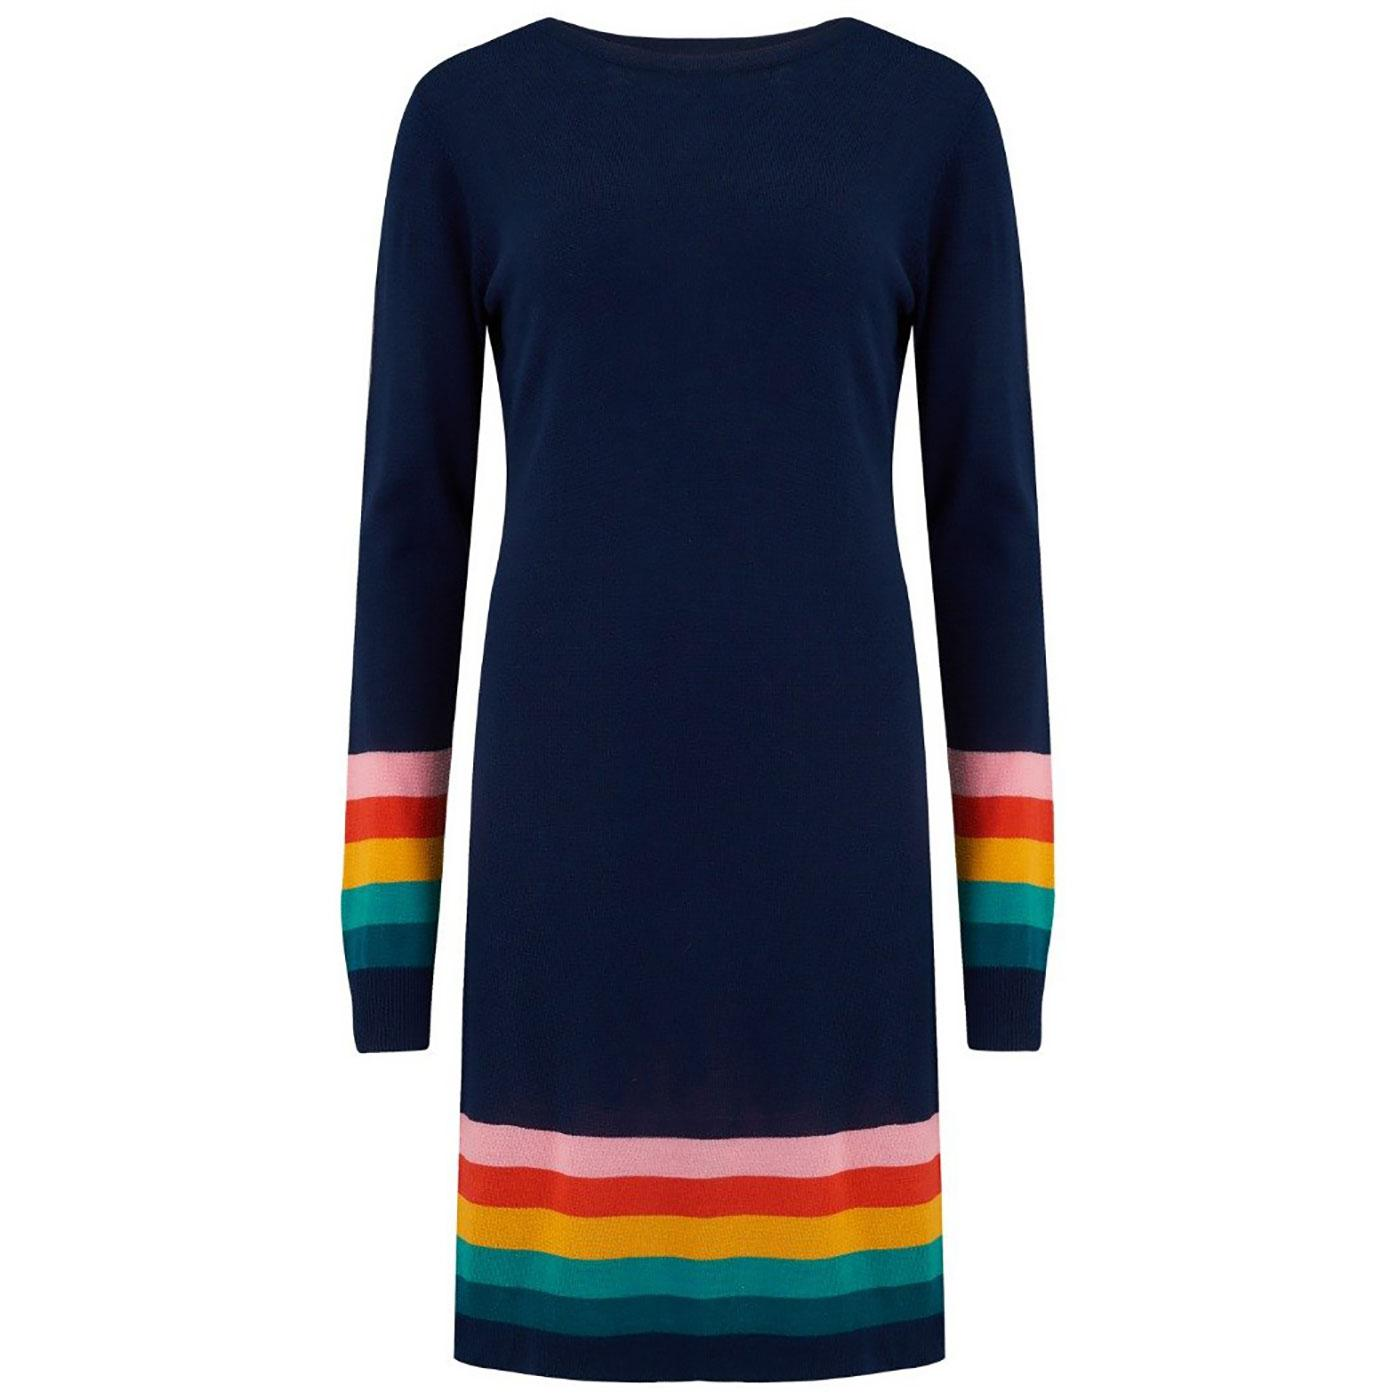 Evie SUGARHILL BRIGHTON Summer Stripe Knit Dress